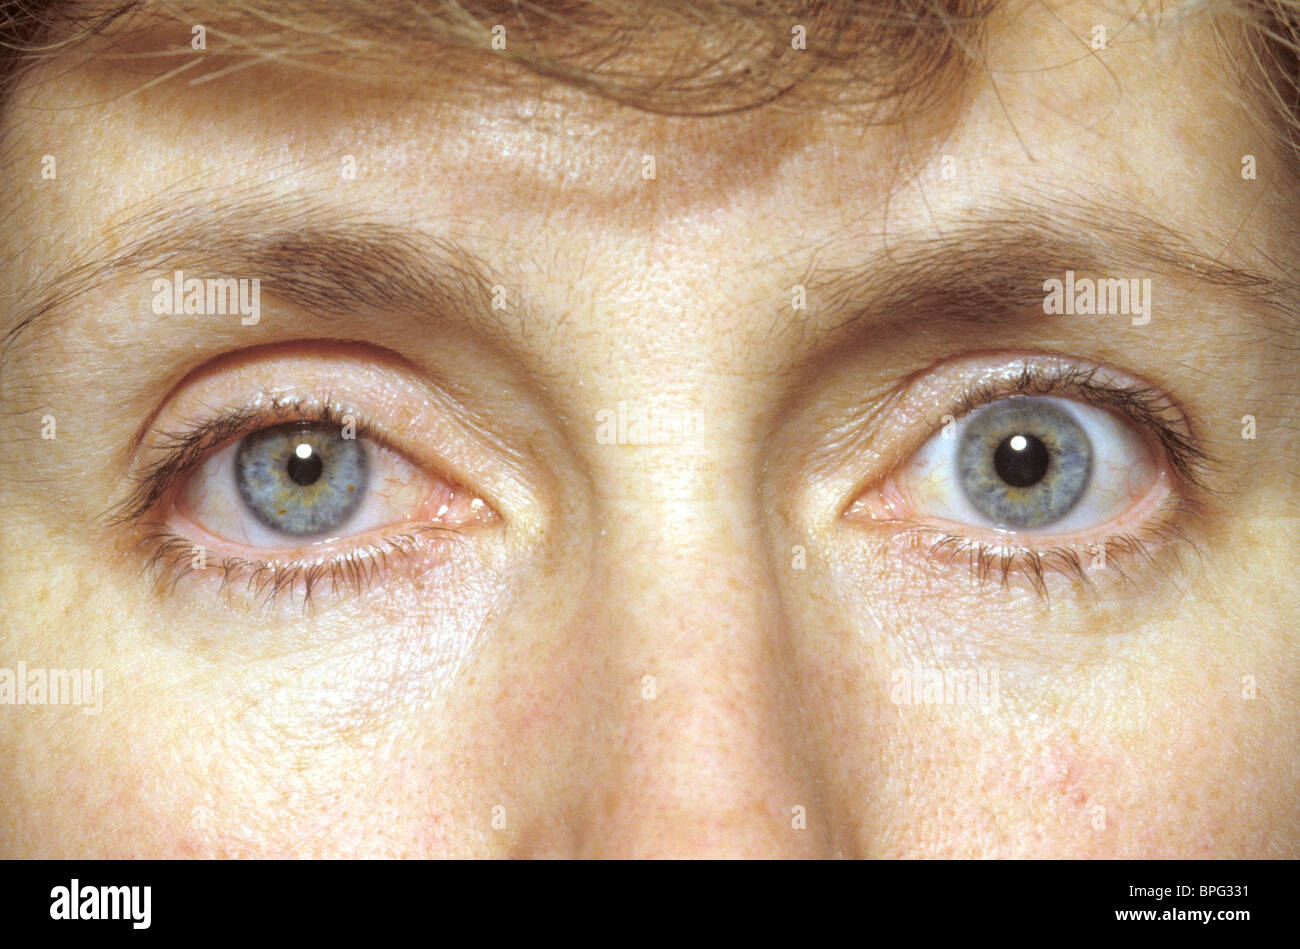 Horners Syndrome Is Caused By Injury To The Sympathetic Nerves Of